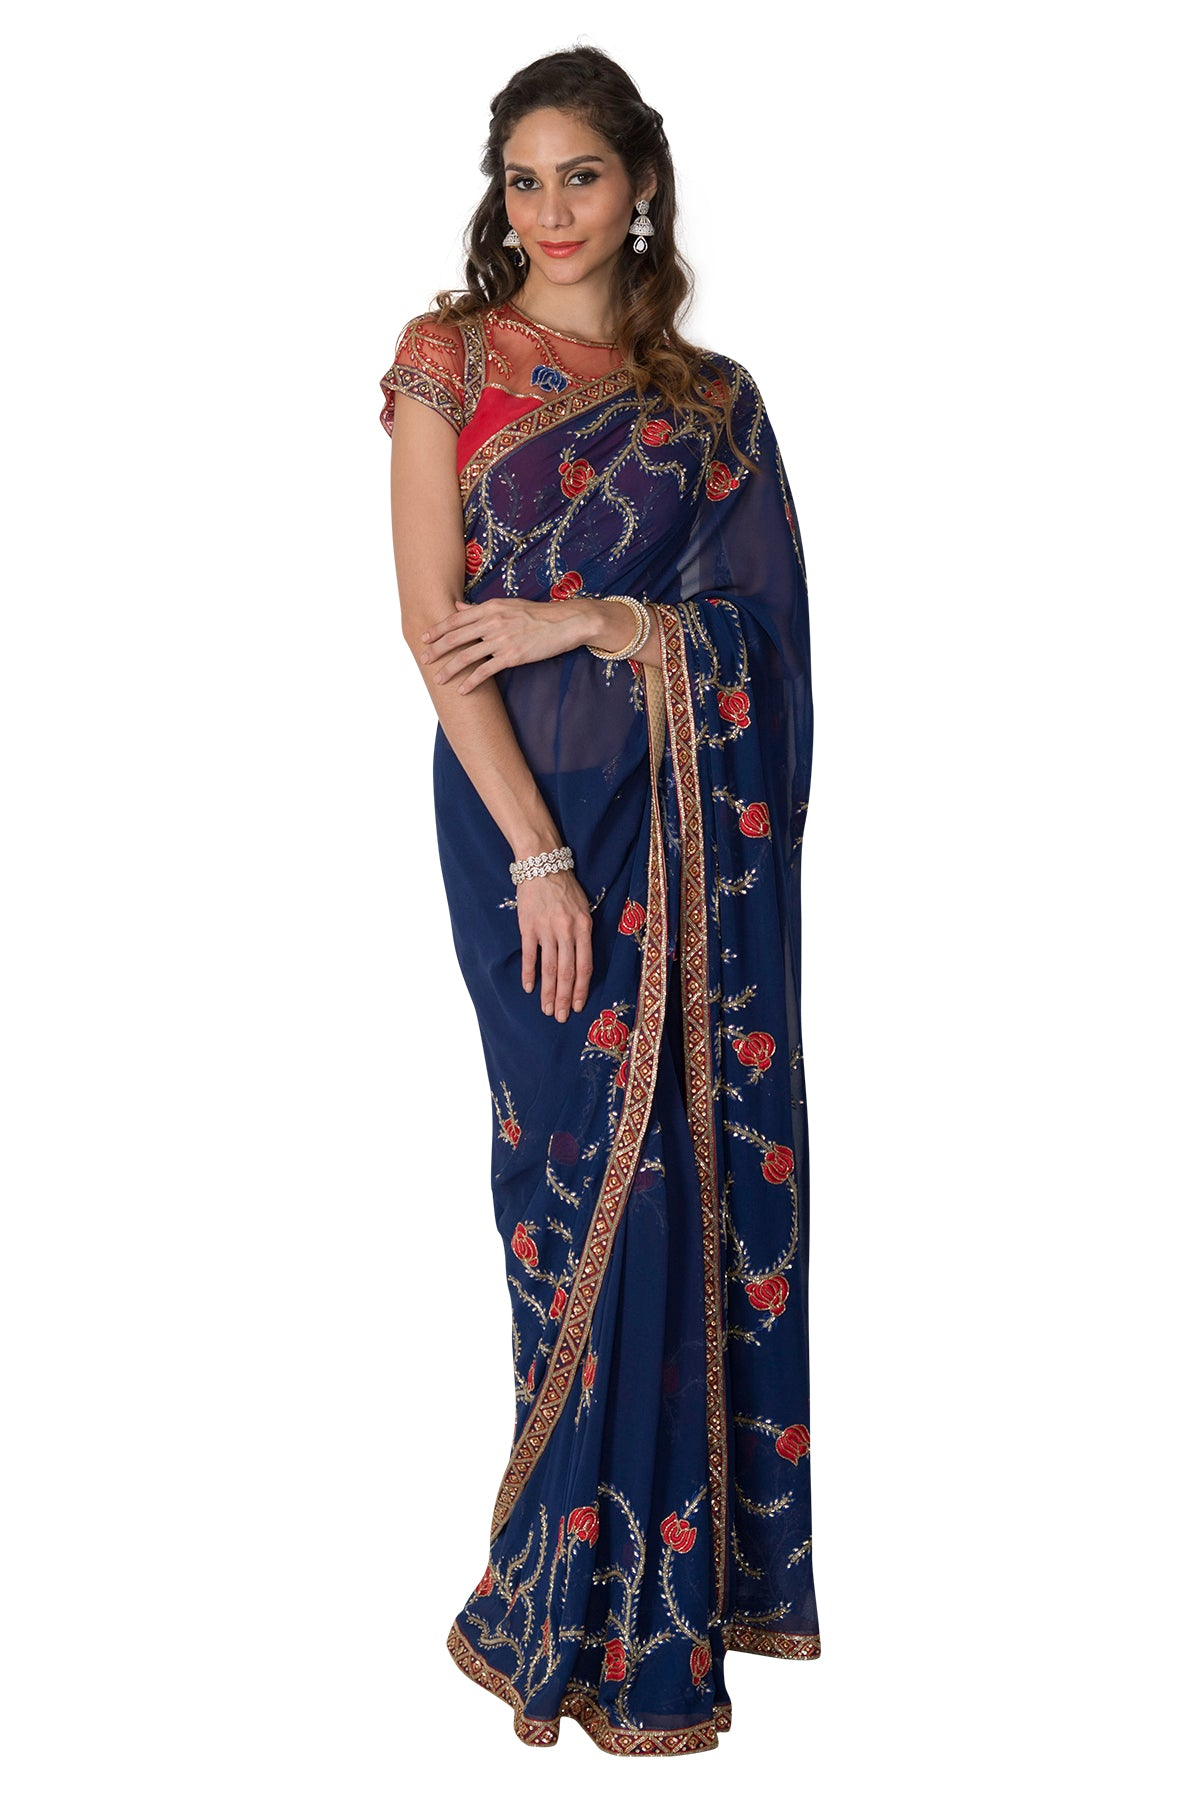 Bring on the moody blues and put on your dancing shoes in this stunning blue saree with red embroidery. Please note that the blouse and petticoat are not included.